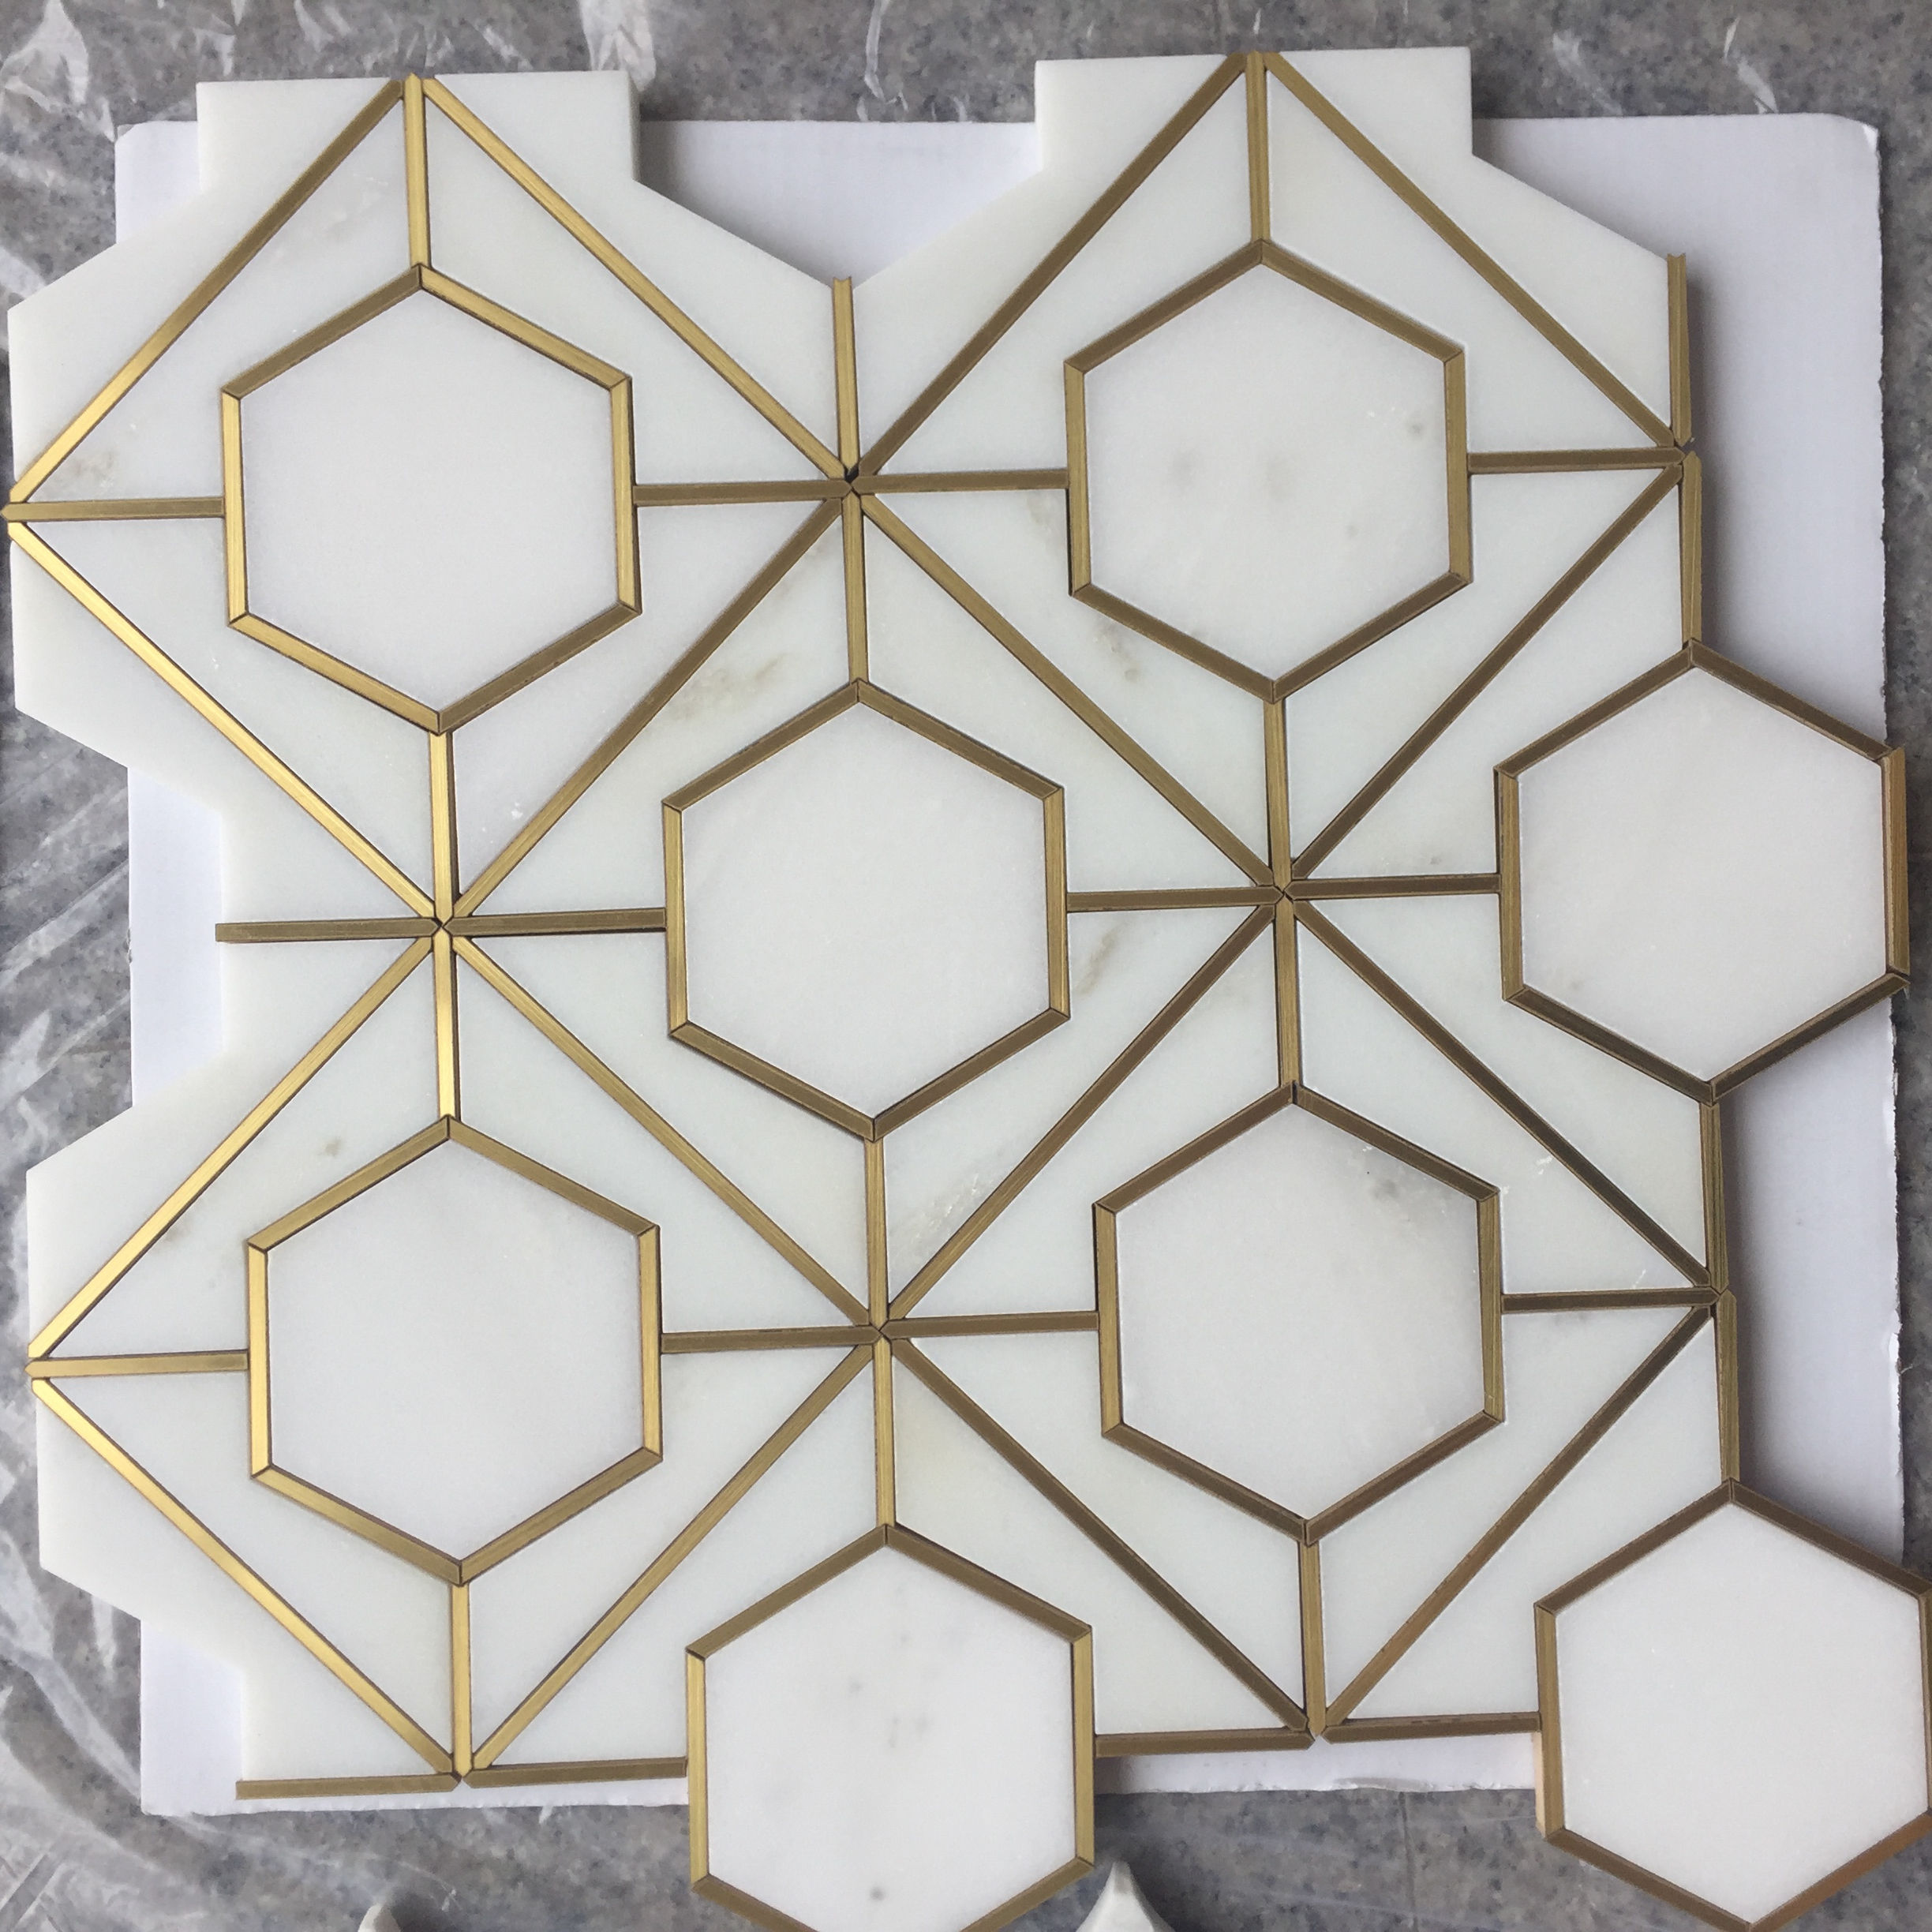 hexagon shape mosaic tile,thassos white marble and brass inlay material